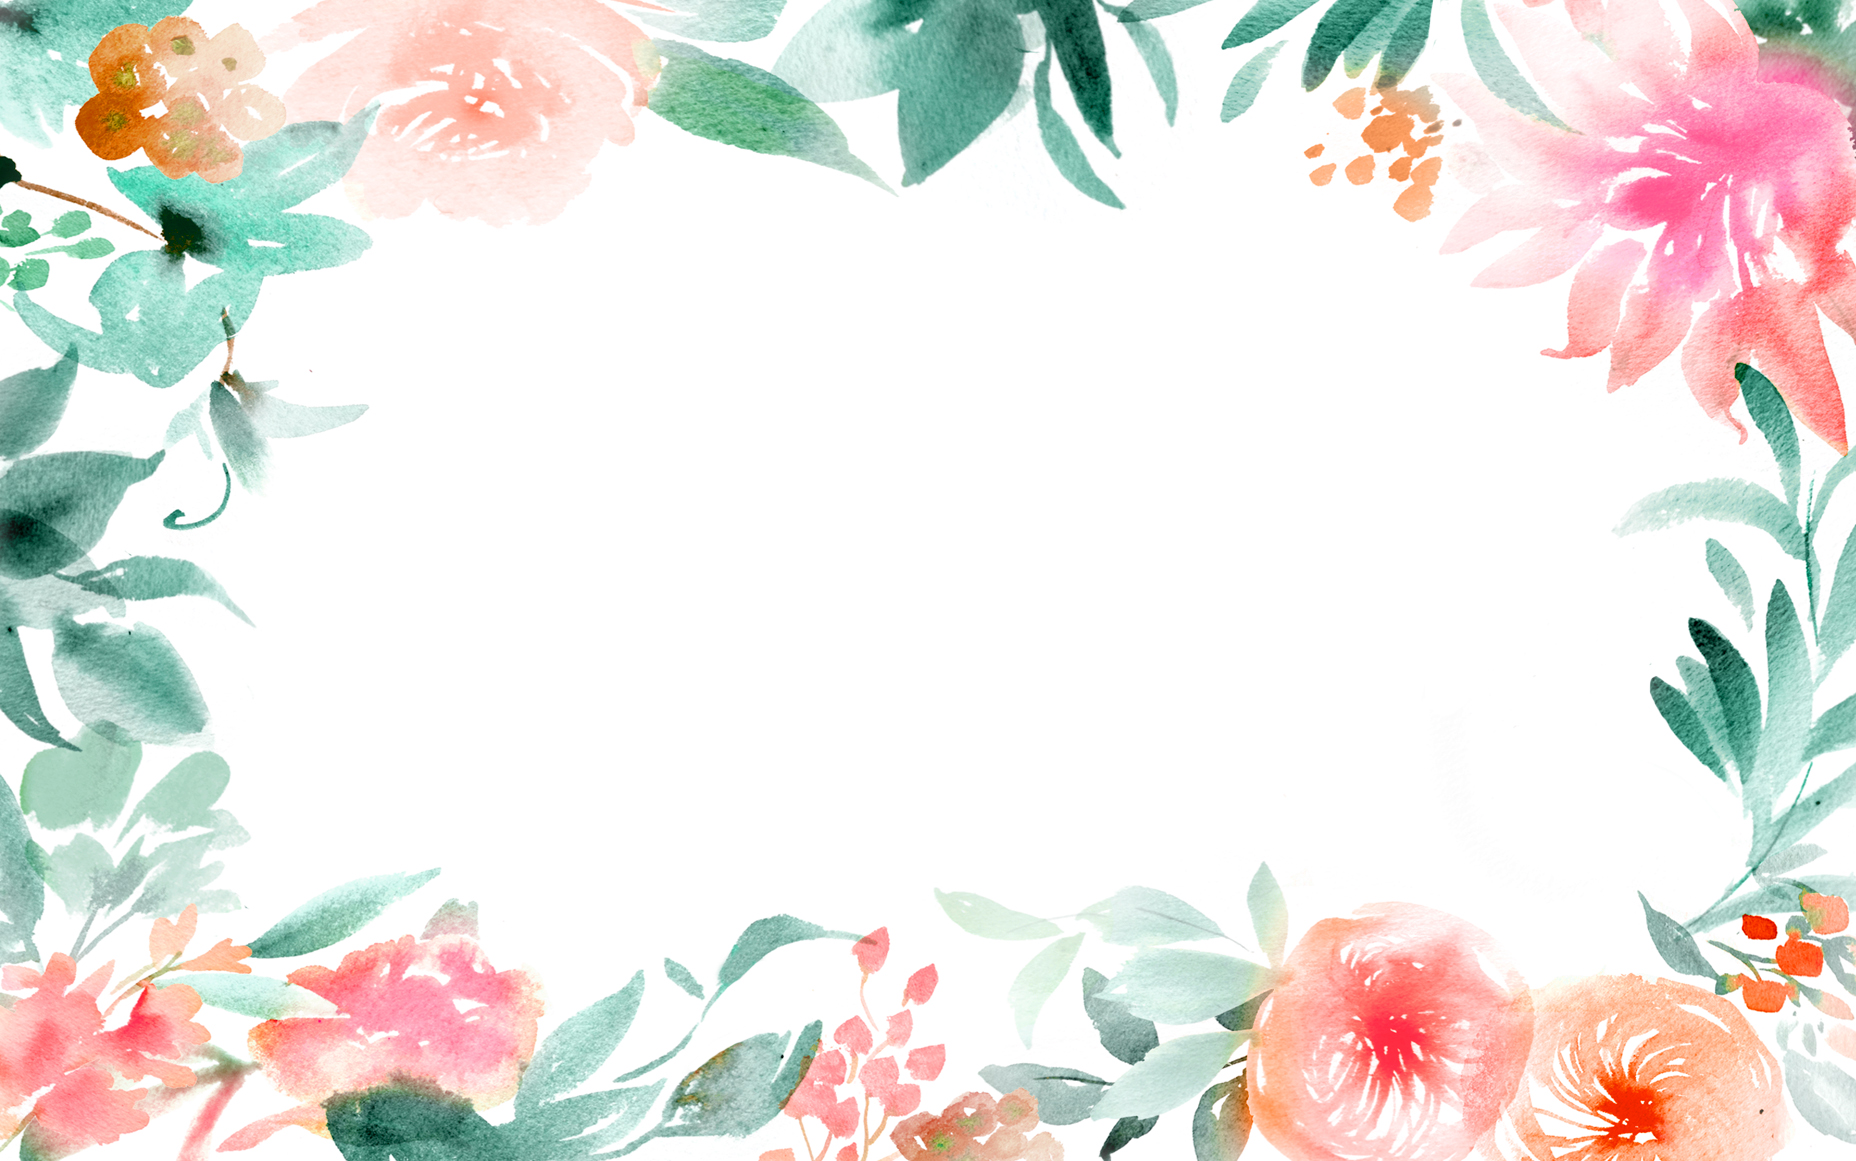 Great flower border ppt background #1164